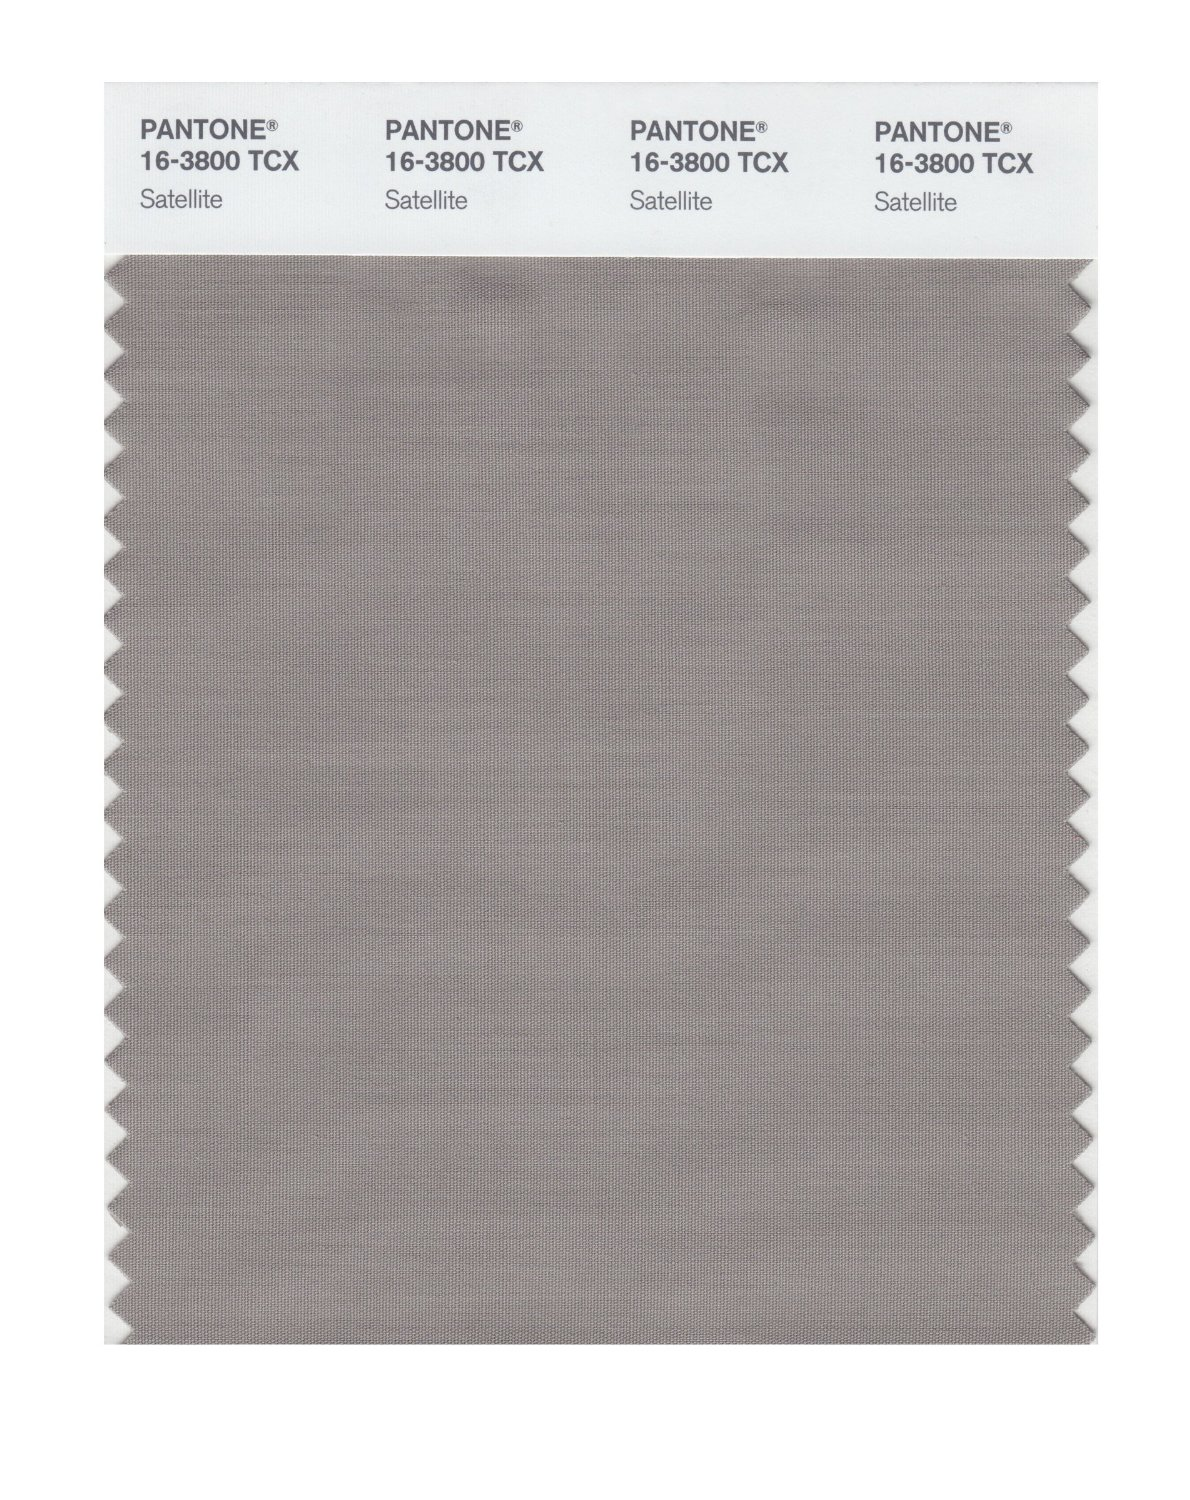 Pantone Smart Swatch 16-3800 Satellite